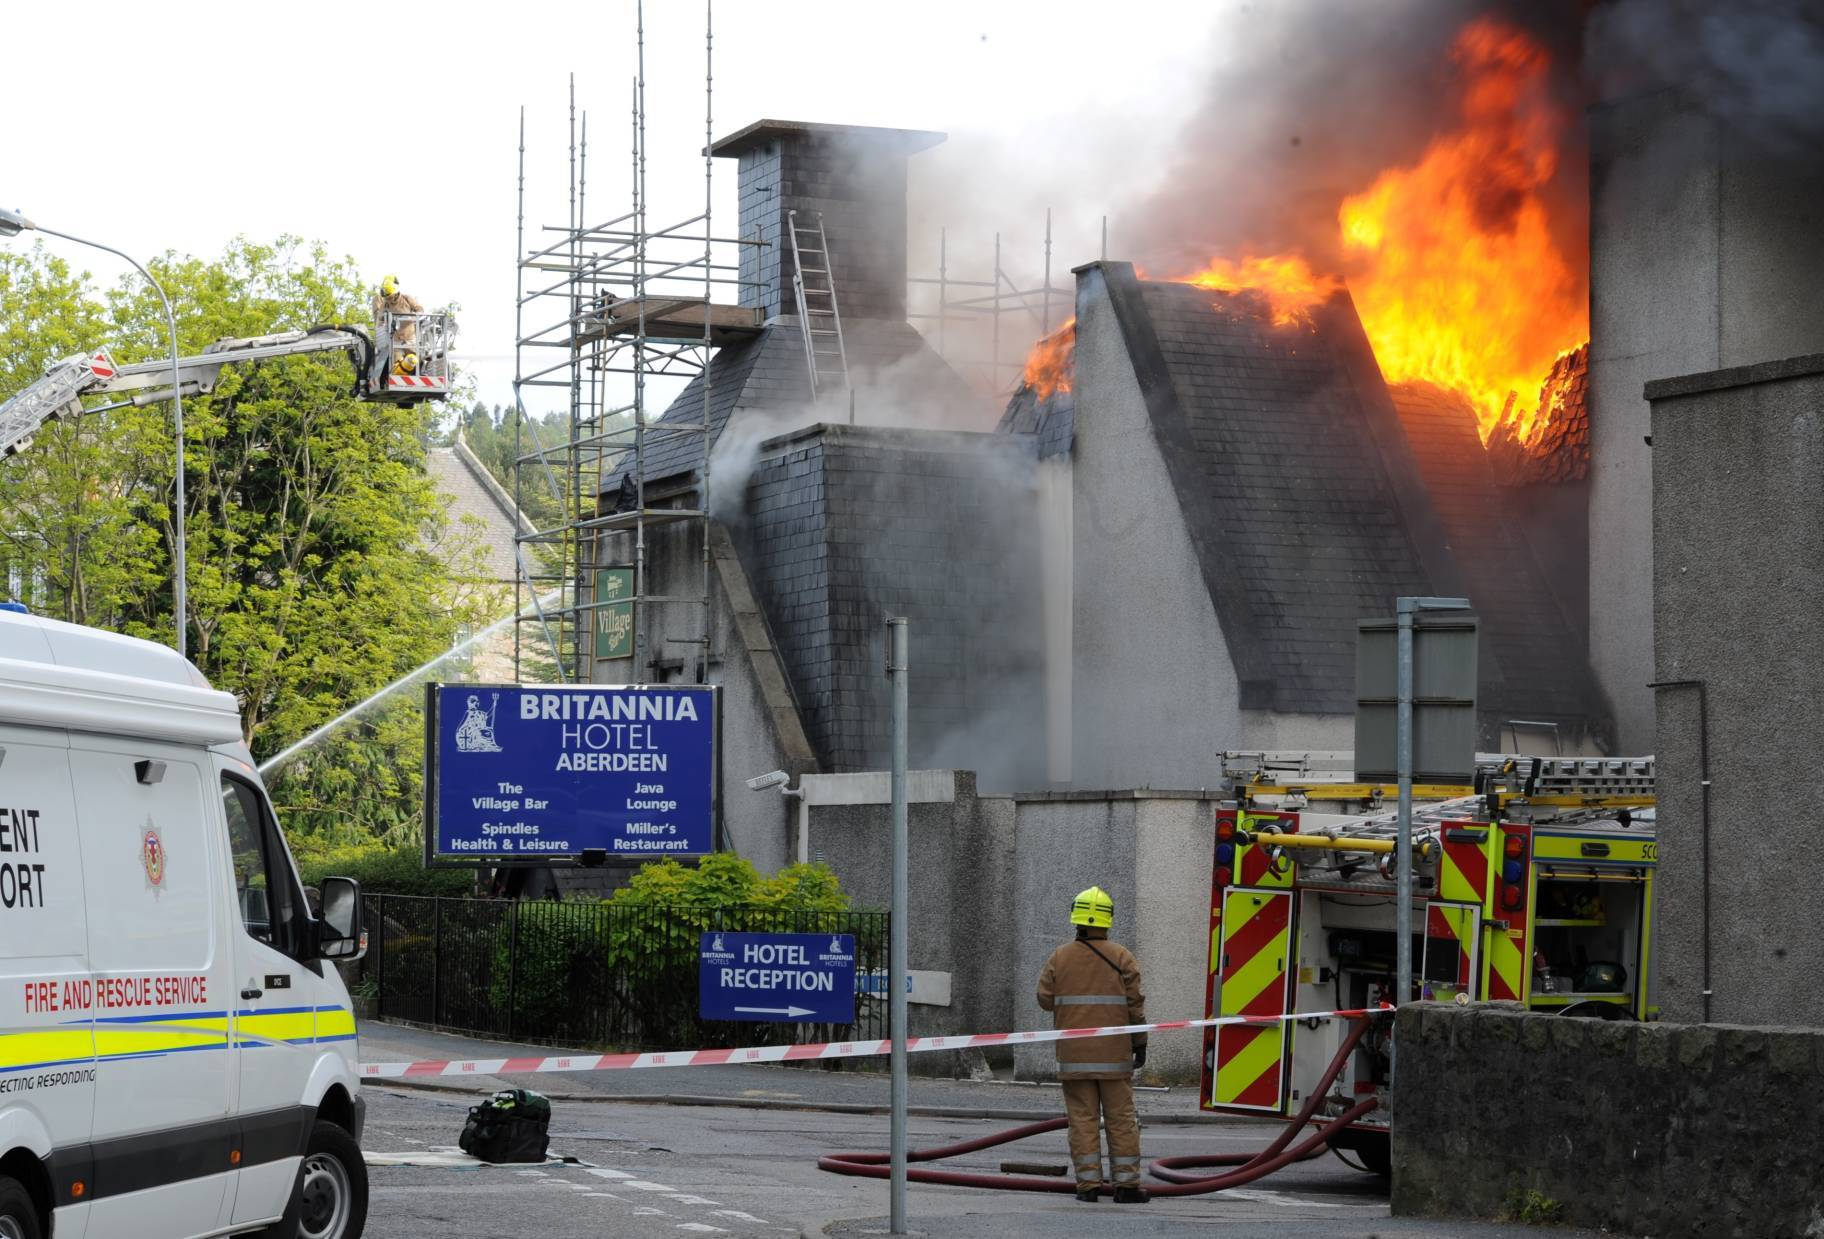 Firefighters tackle the major fire at Aberdeen's Britannia Hotel. Picture by Darrell Benns